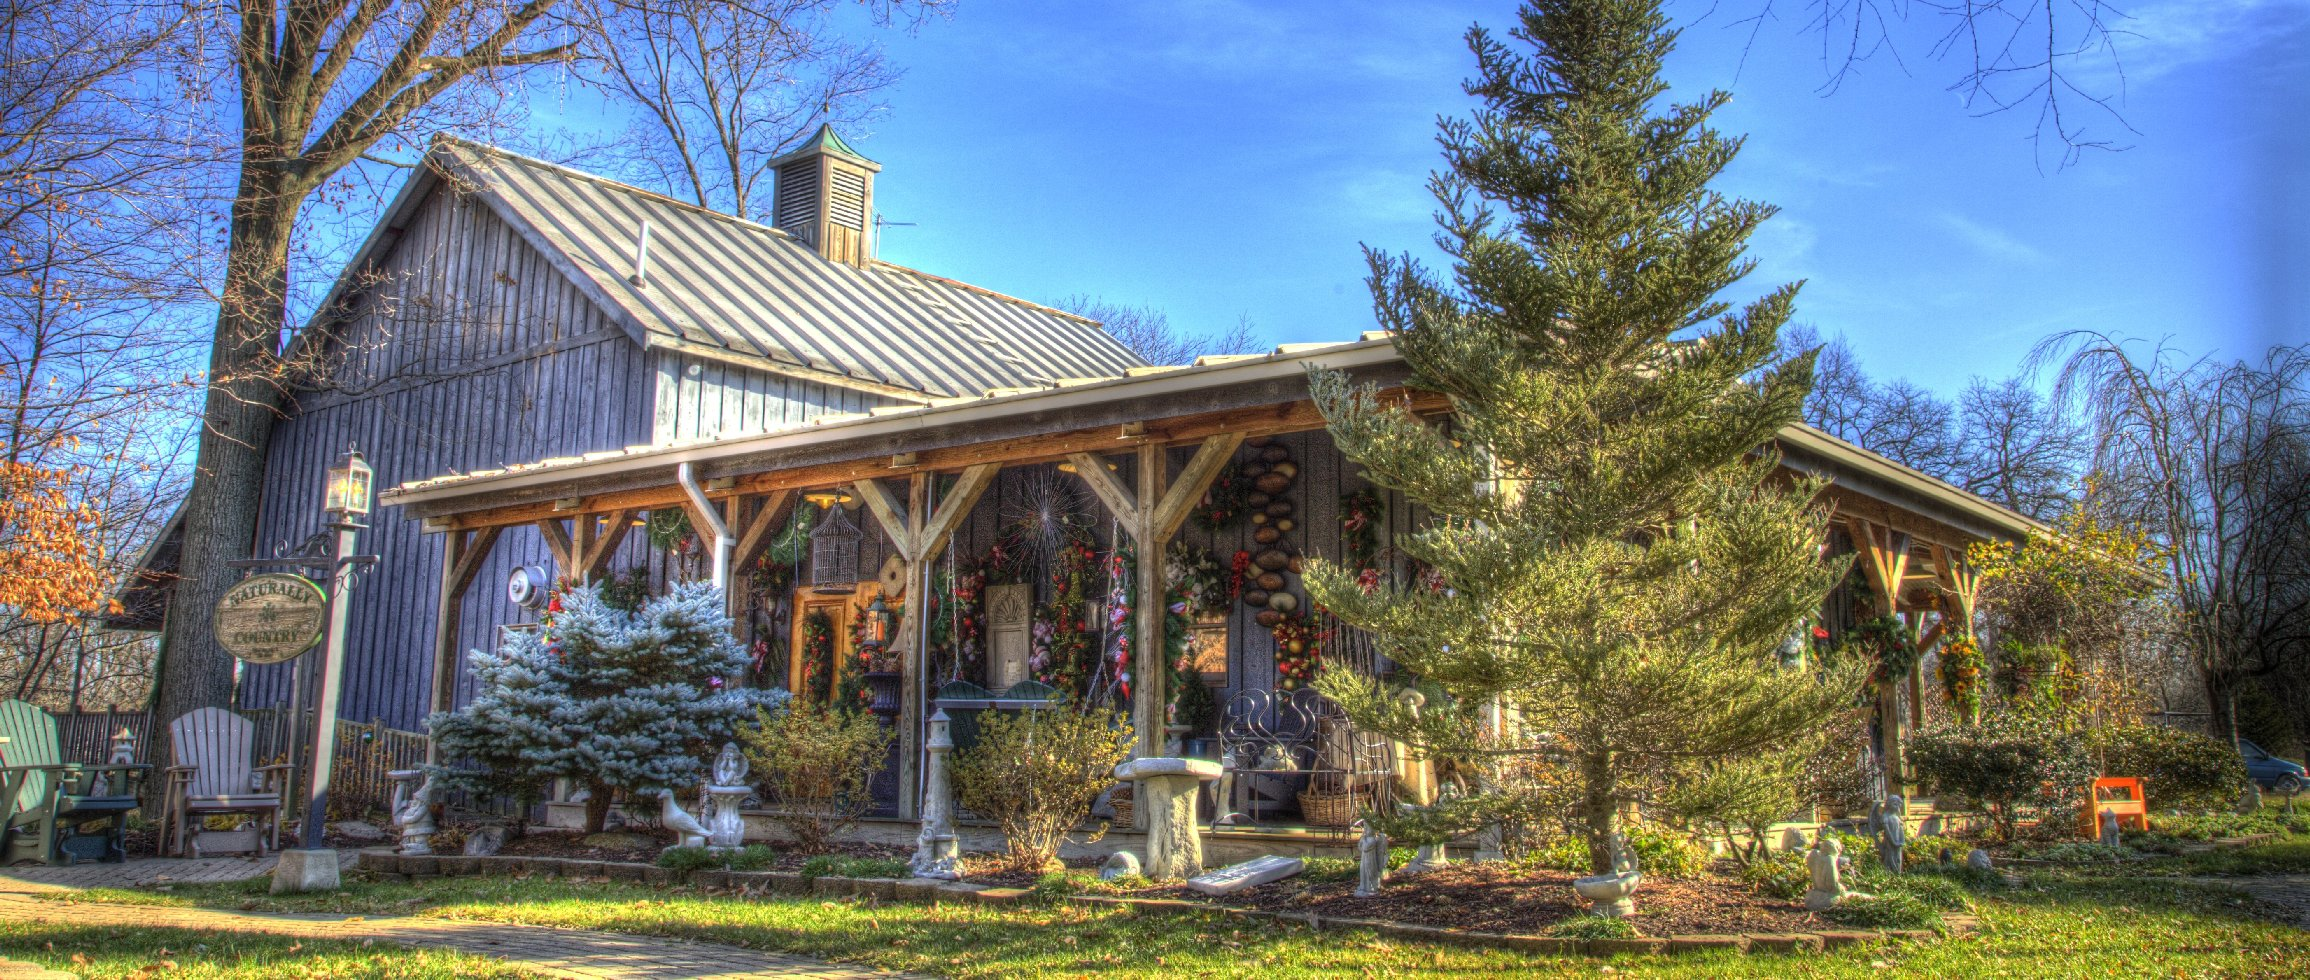 At Naturally Country we invite you to come wander along the brick sidewalks relax by the cascading waterfall and enjoy the lush garden scenery. & Michigan Coupons - Naturally Country home decor floral and gifts ...